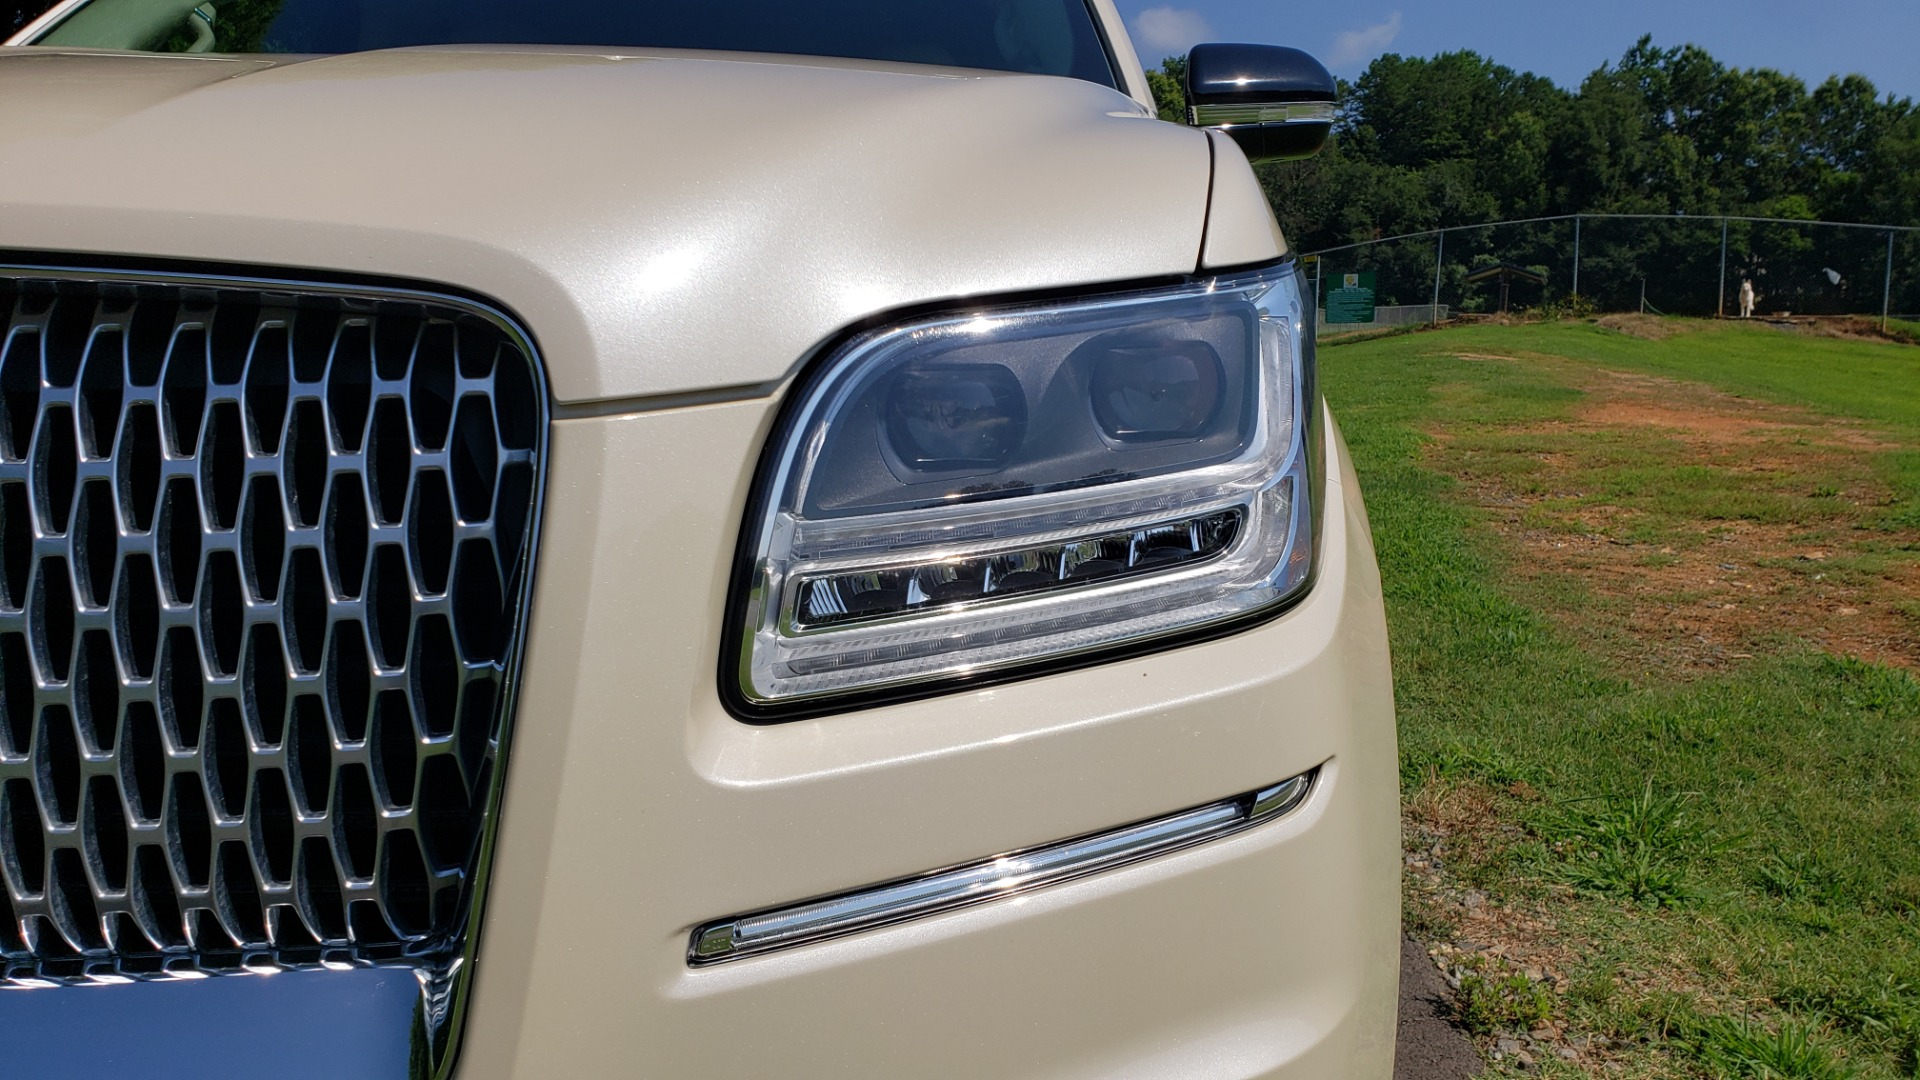 Used 2018 Lincoln NAVIGATOR PREMIERE 4X2 / TWIN-TURBO V6 / NAV / 3-ROW / REARVIEW for sale Sold at Formula Imports in Charlotte NC 28227 13